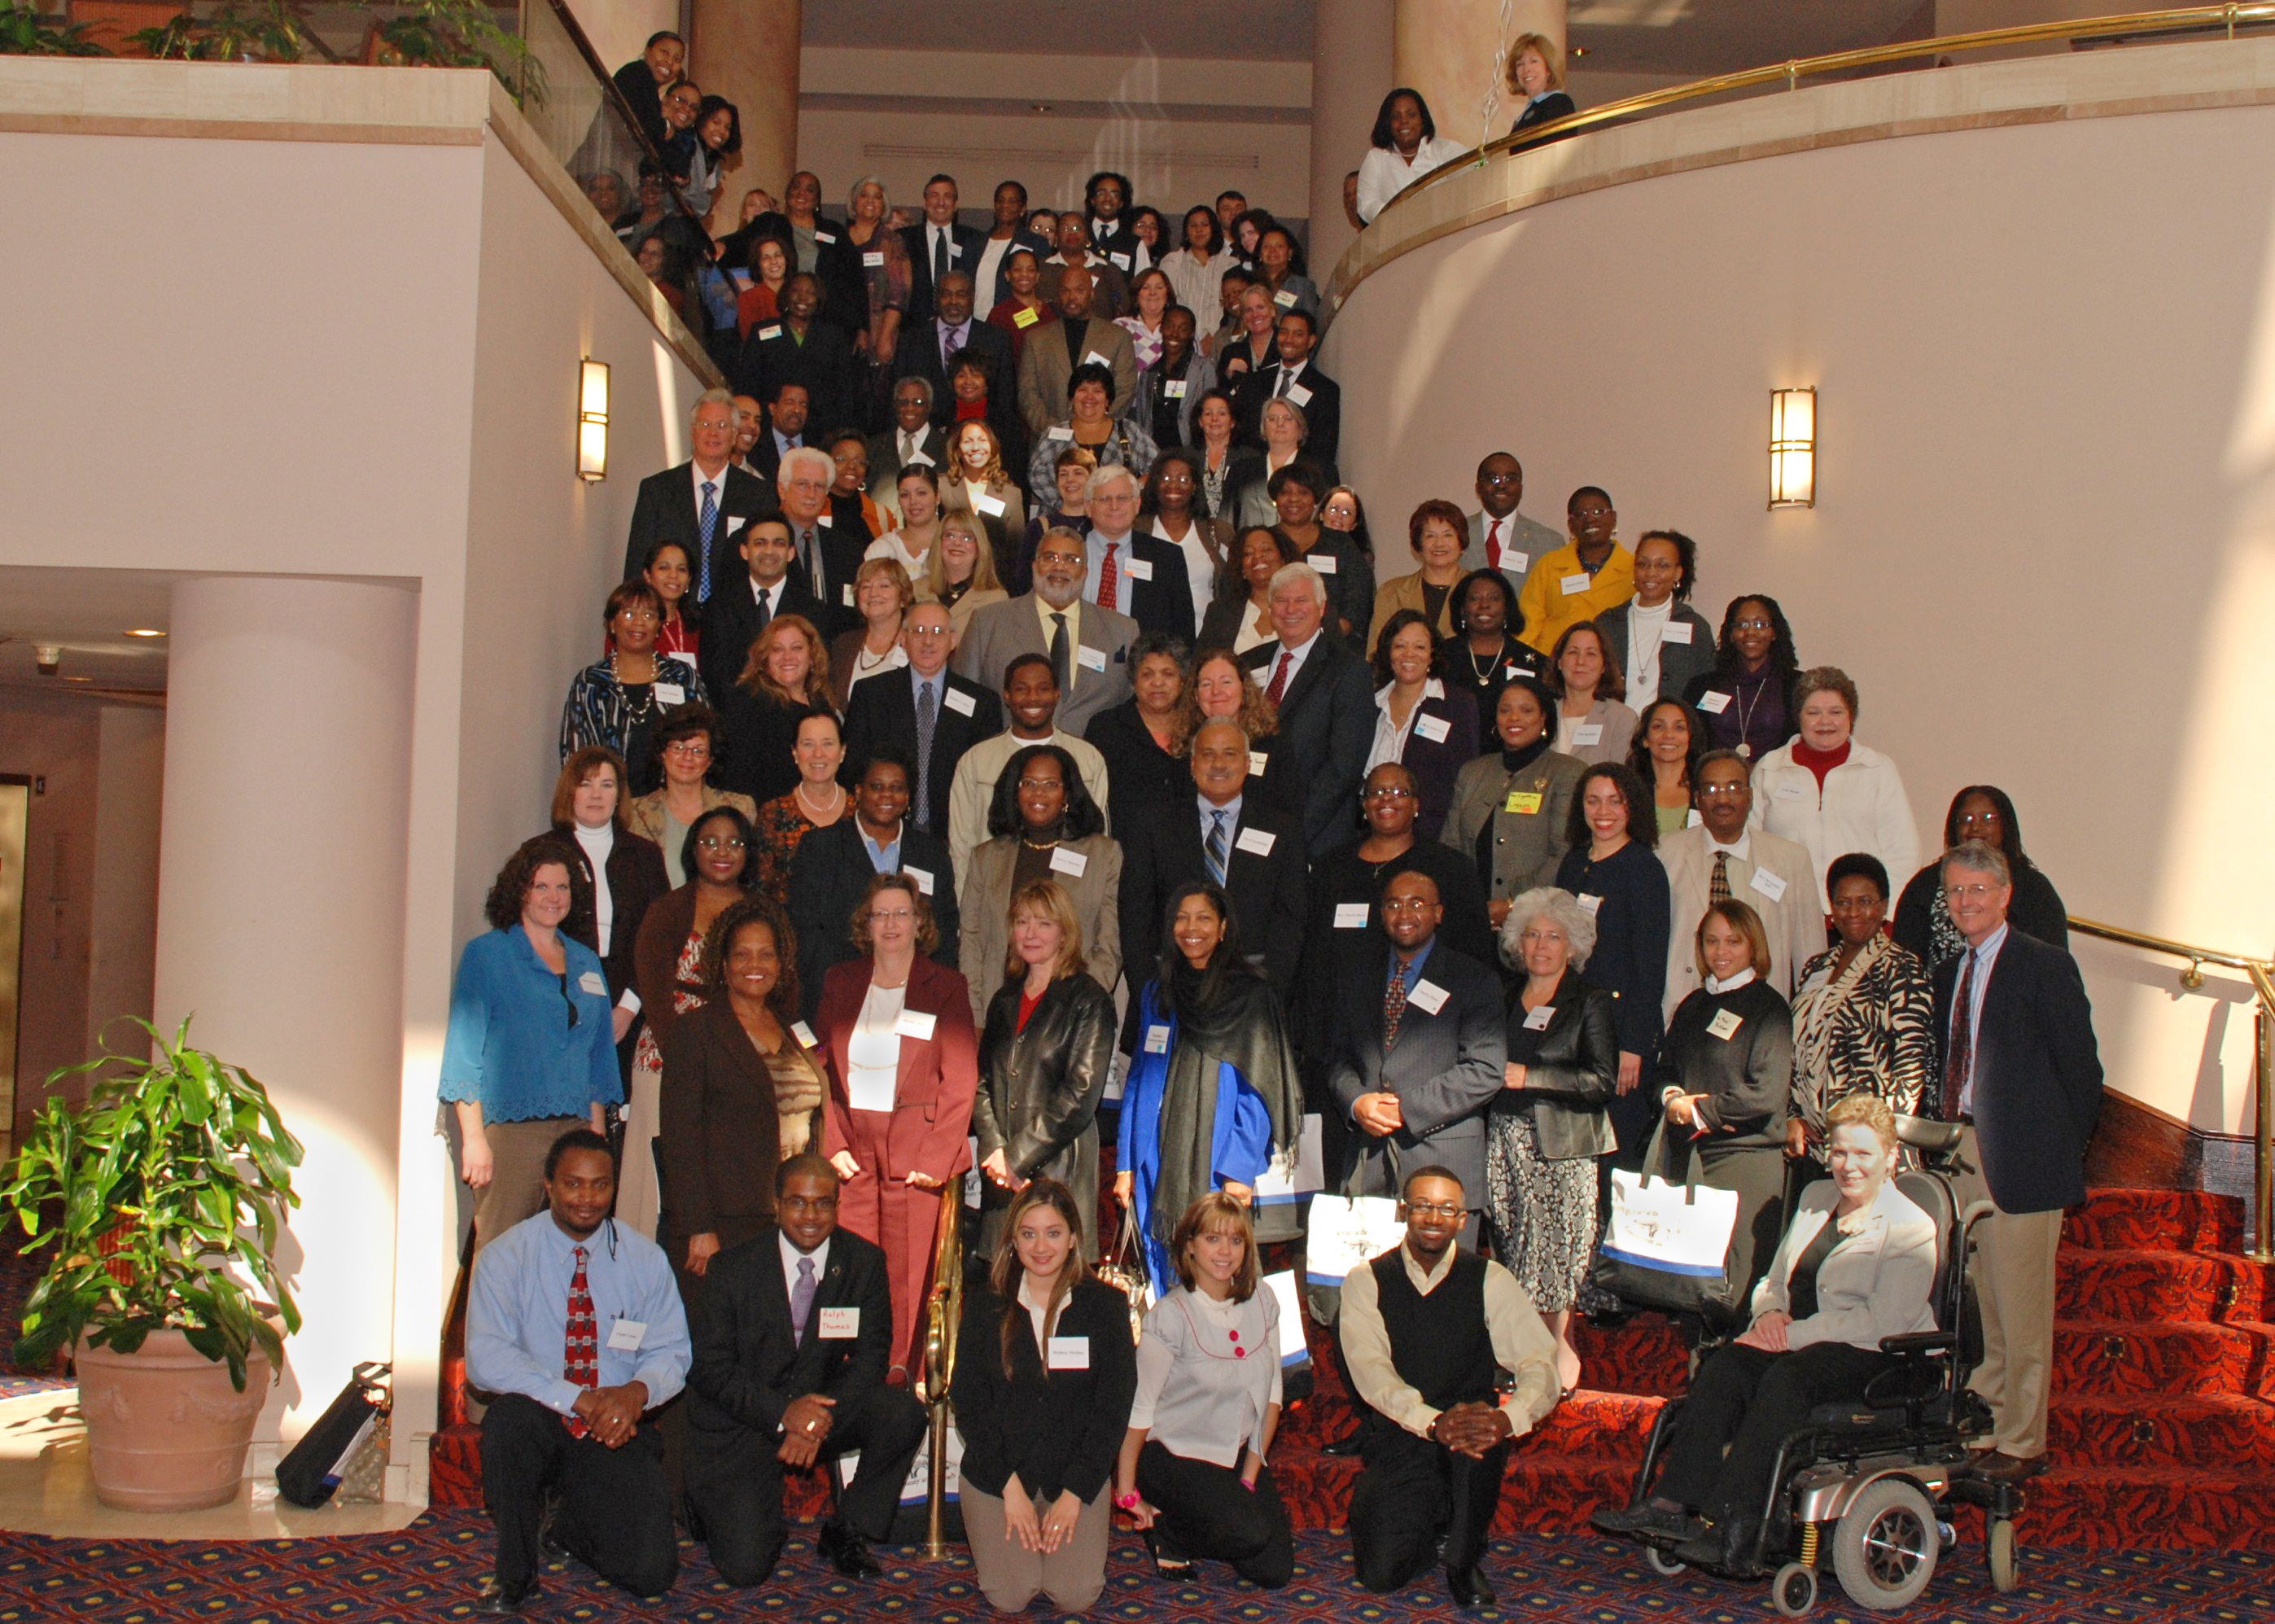 Participants from the first Suffolk County Minority Health Summit in 2008